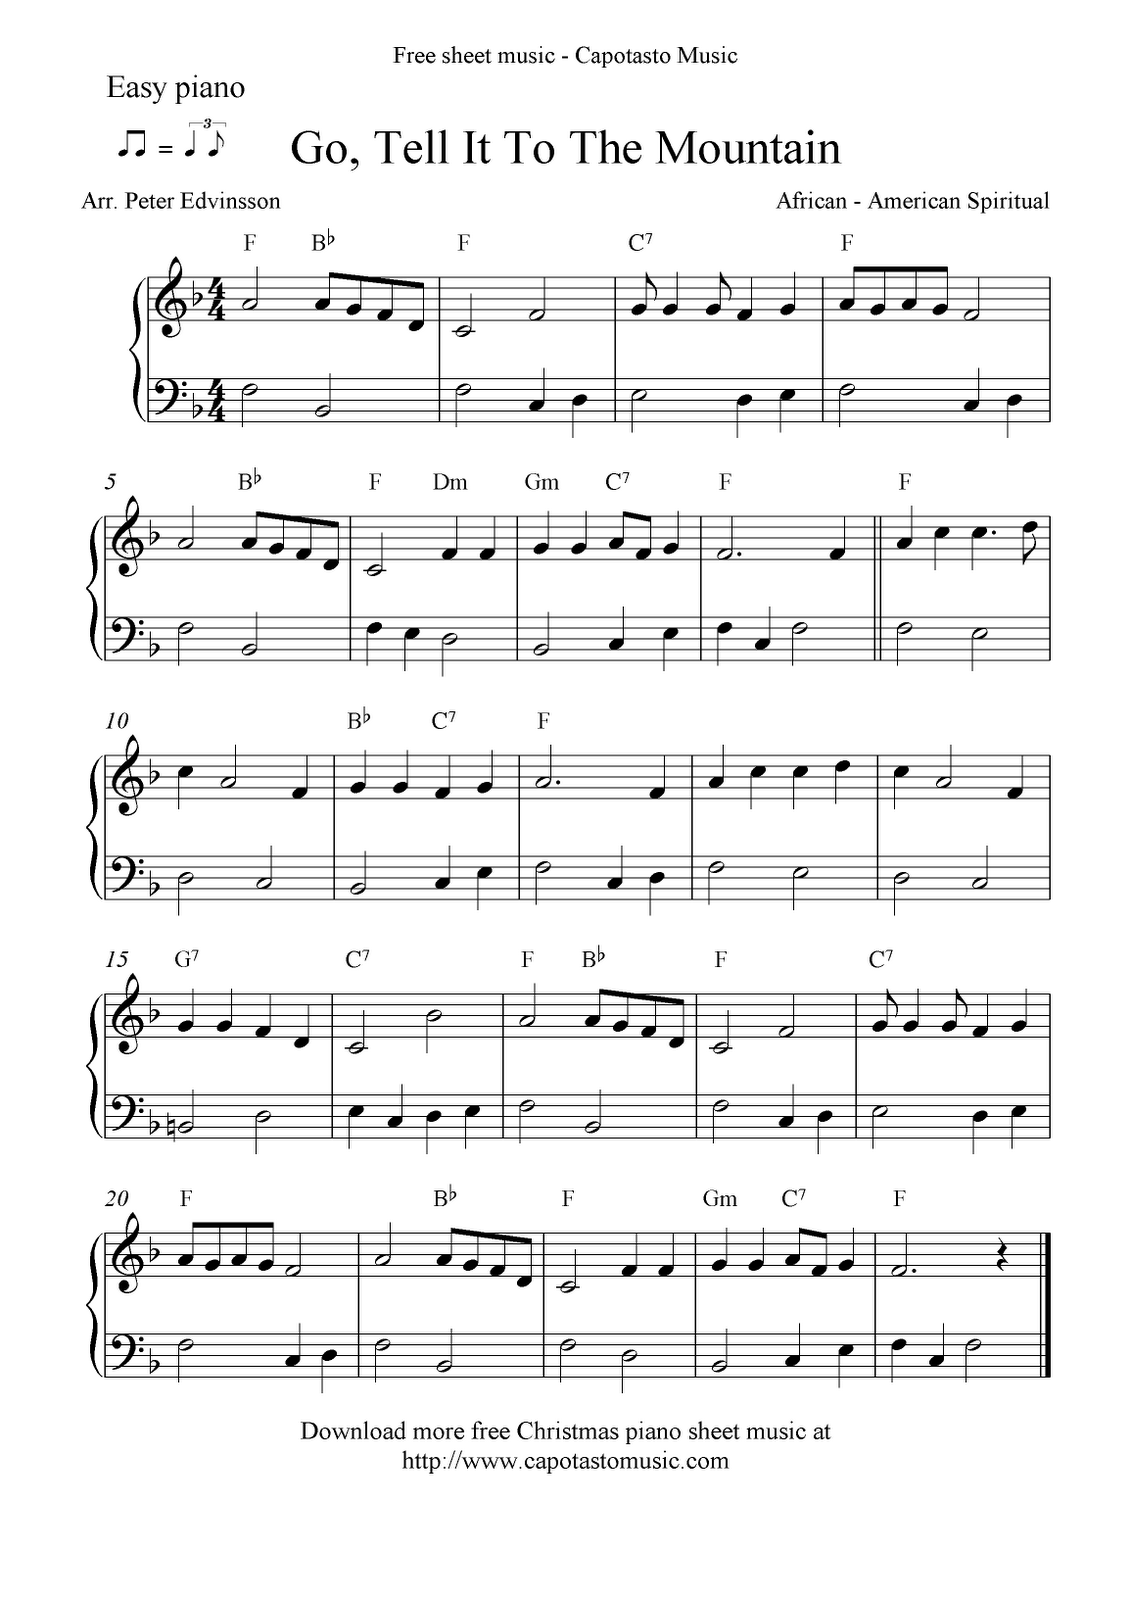 Free Printable Piano Sheet Music